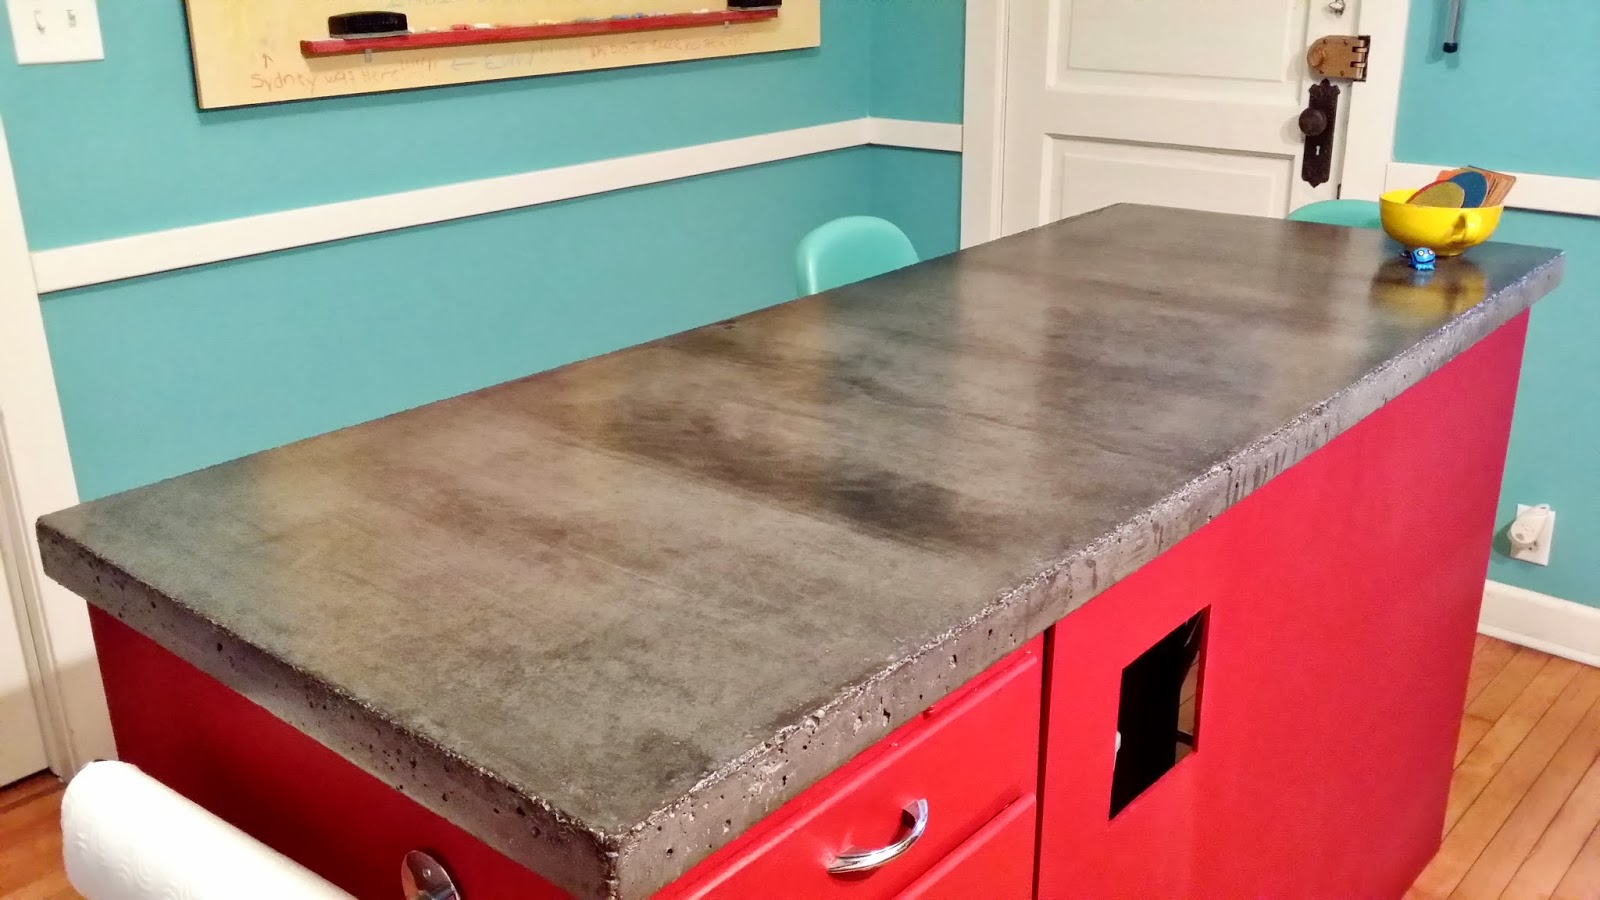 Apartment 528: The Weekender: DIY Concrete Countertops Part II ...